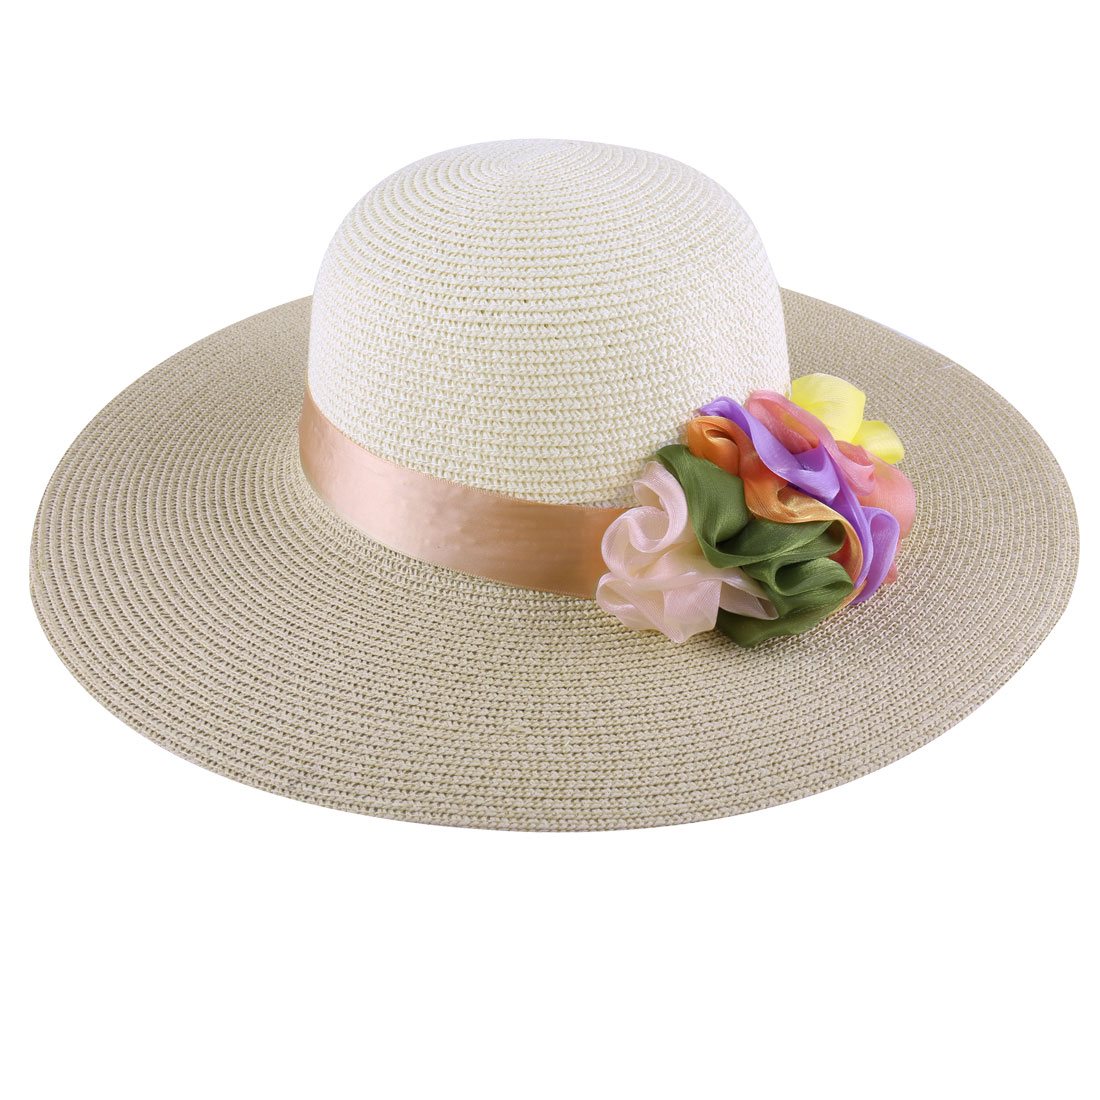 Laides Beige Off-White Two-Color Colorful Handmade Flower Decor Straw Hat